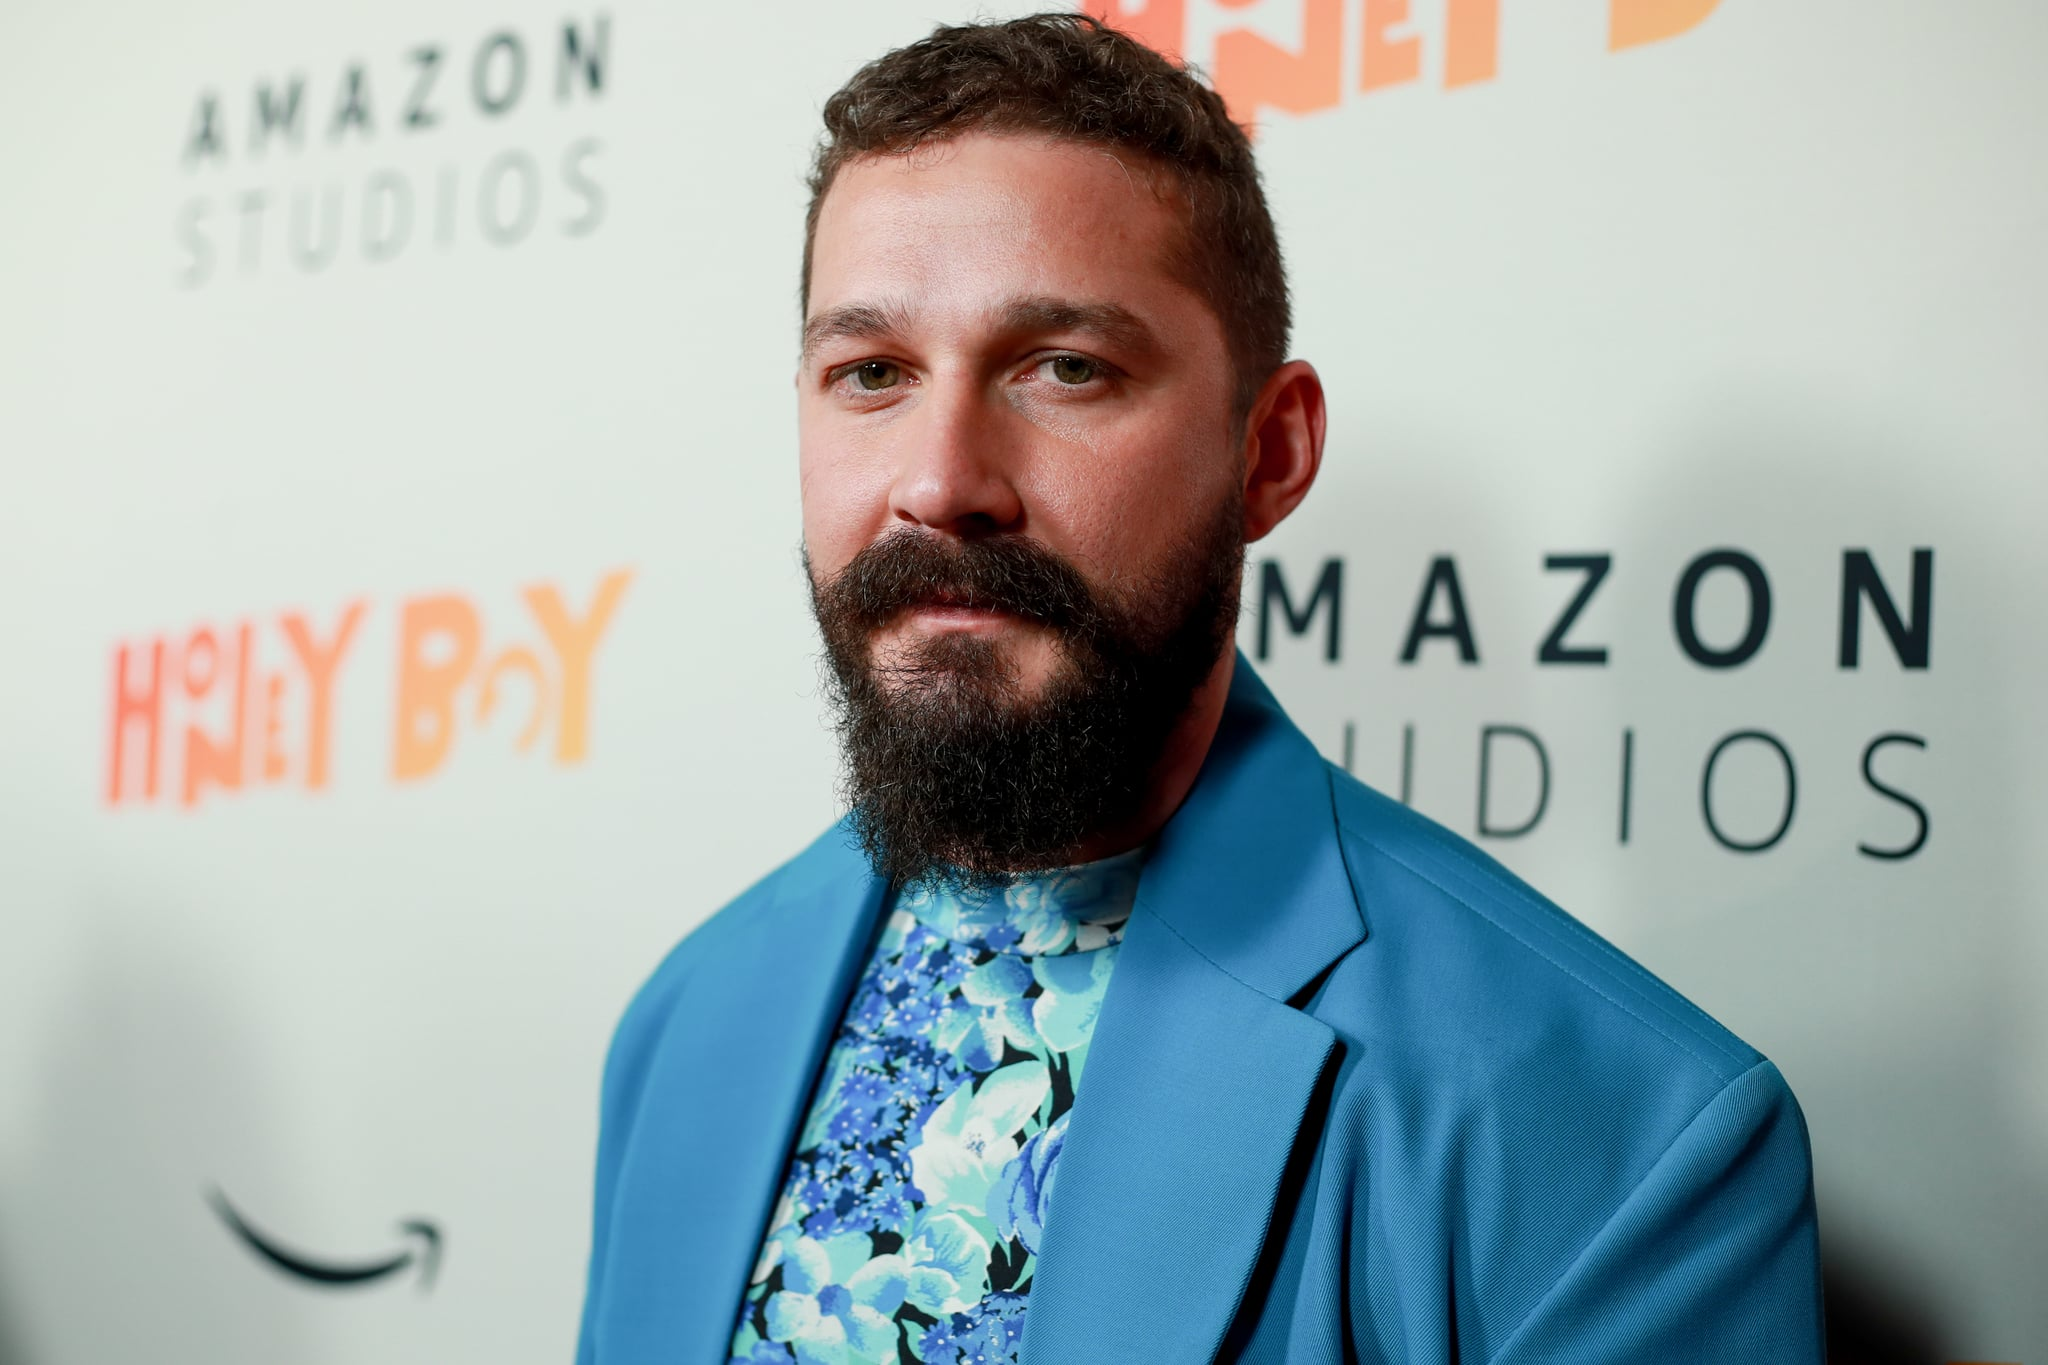 HOLLYWOOD, CALIFORNIA - NOVEMBER 05: Shia LaBeouf attends the premiere of Amazon Studios